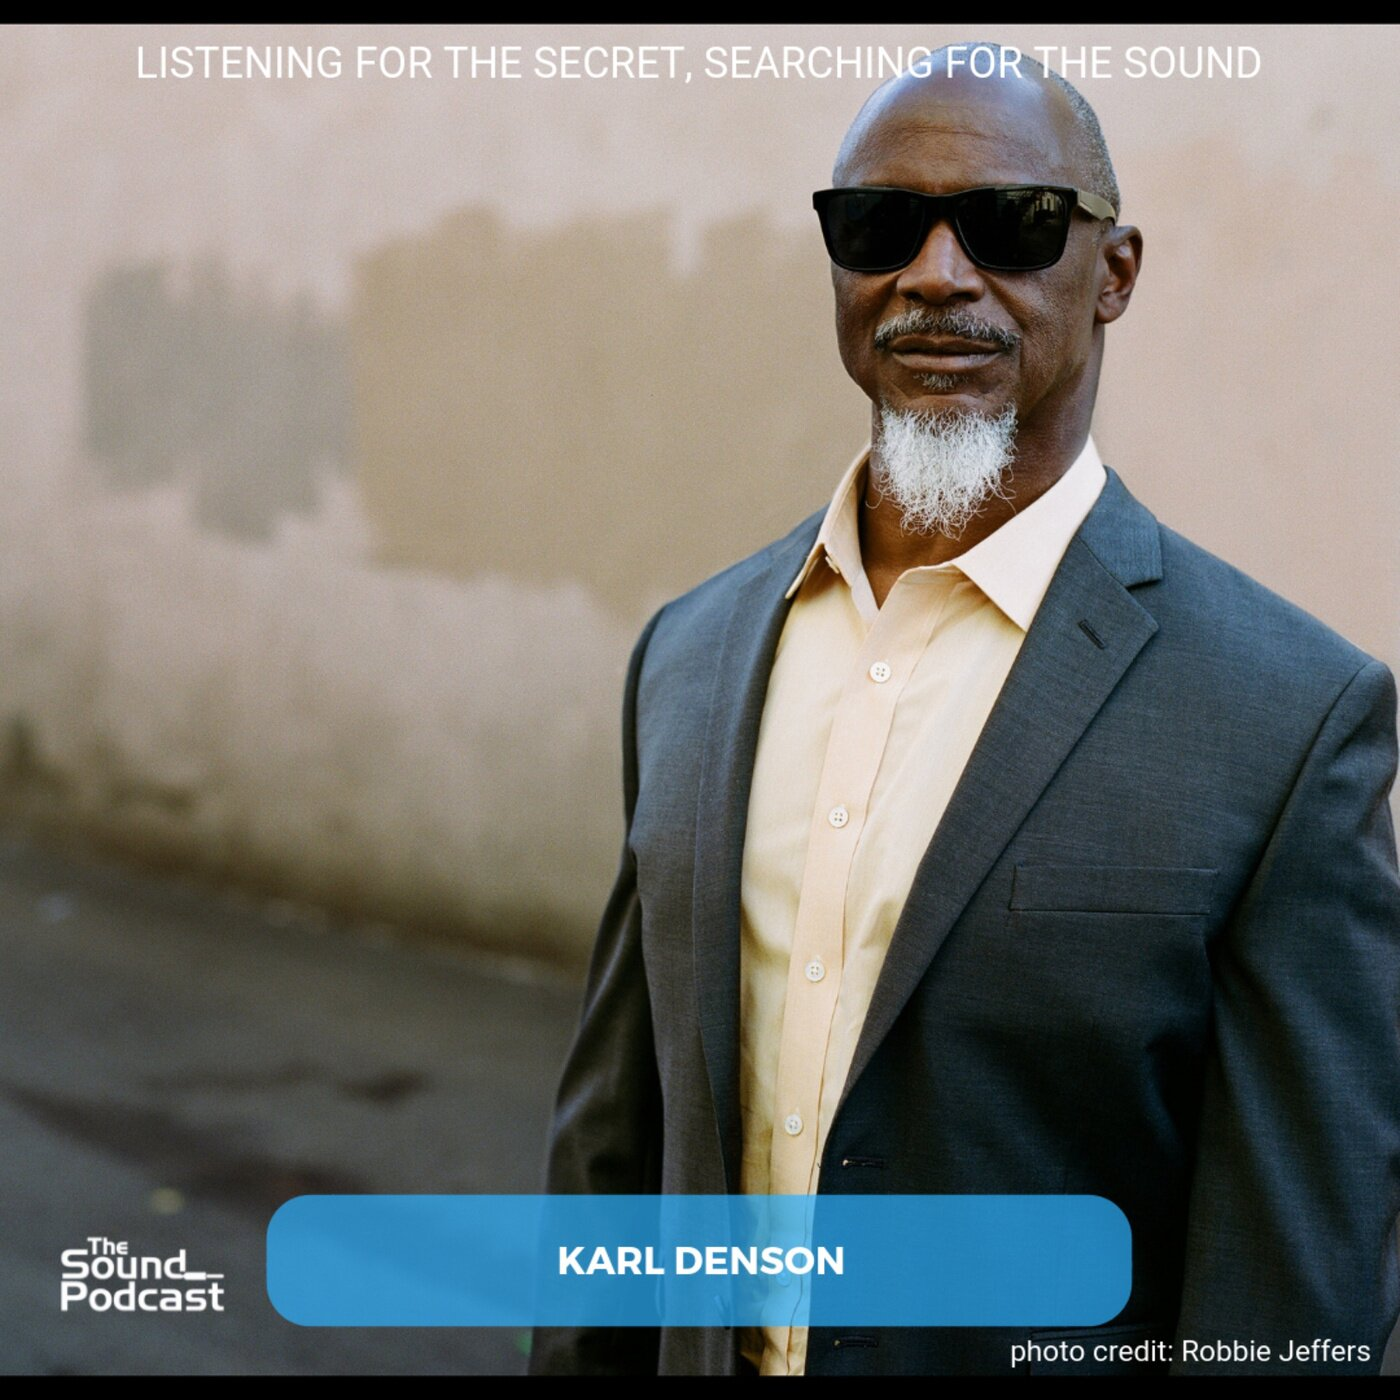 Episode 181: Karl Denson